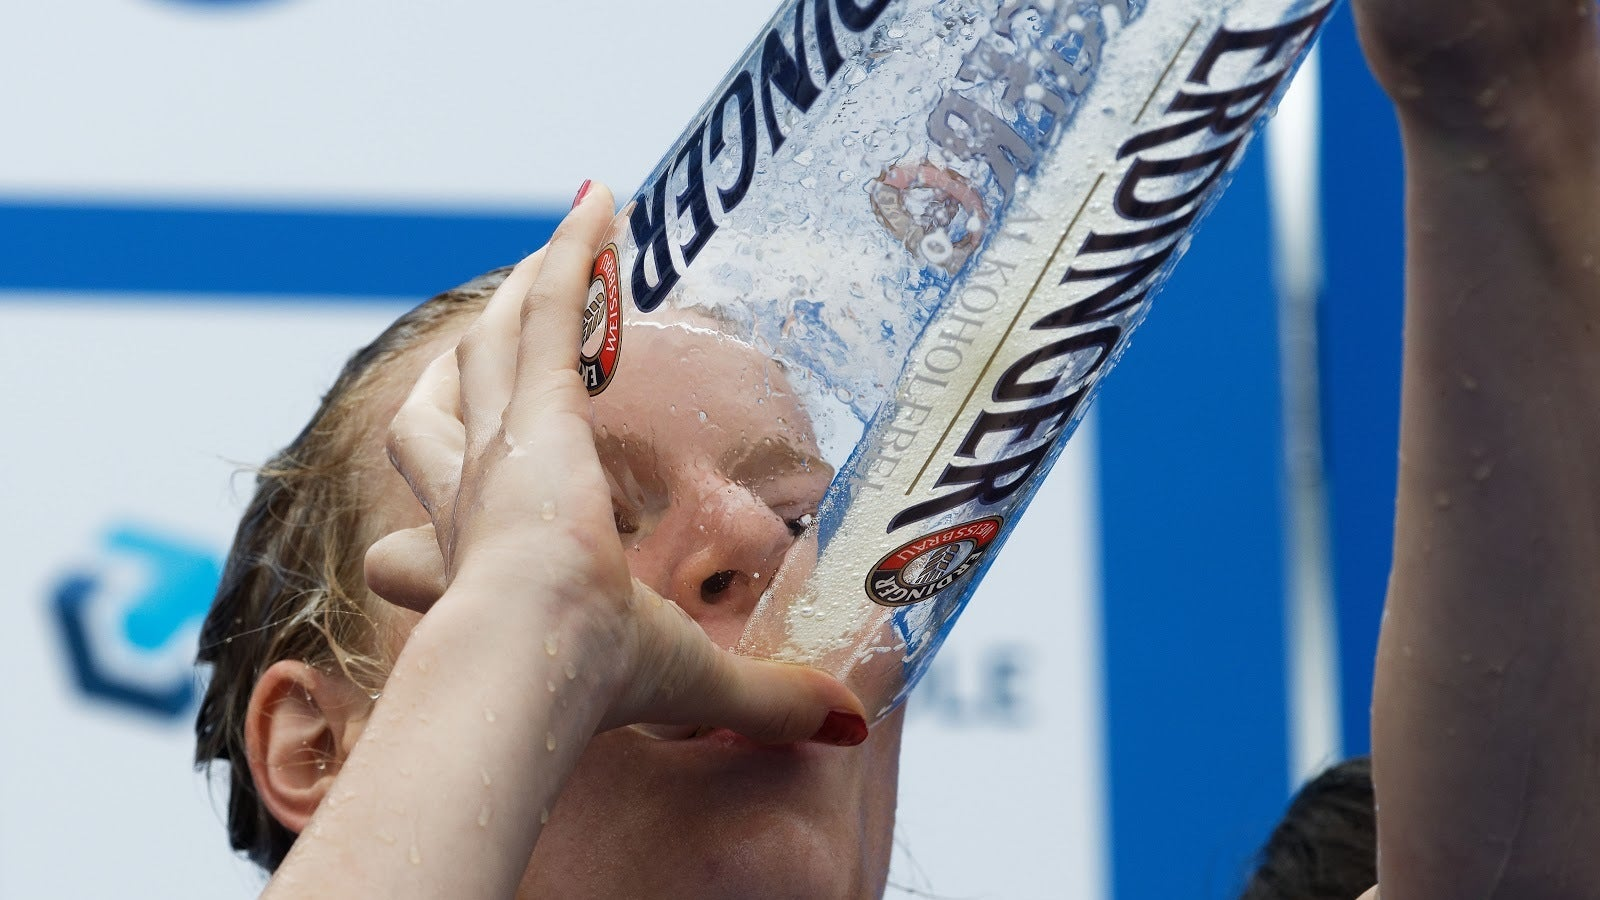 Why Non-Alcoholic Beer Is Germany's Sports Drink